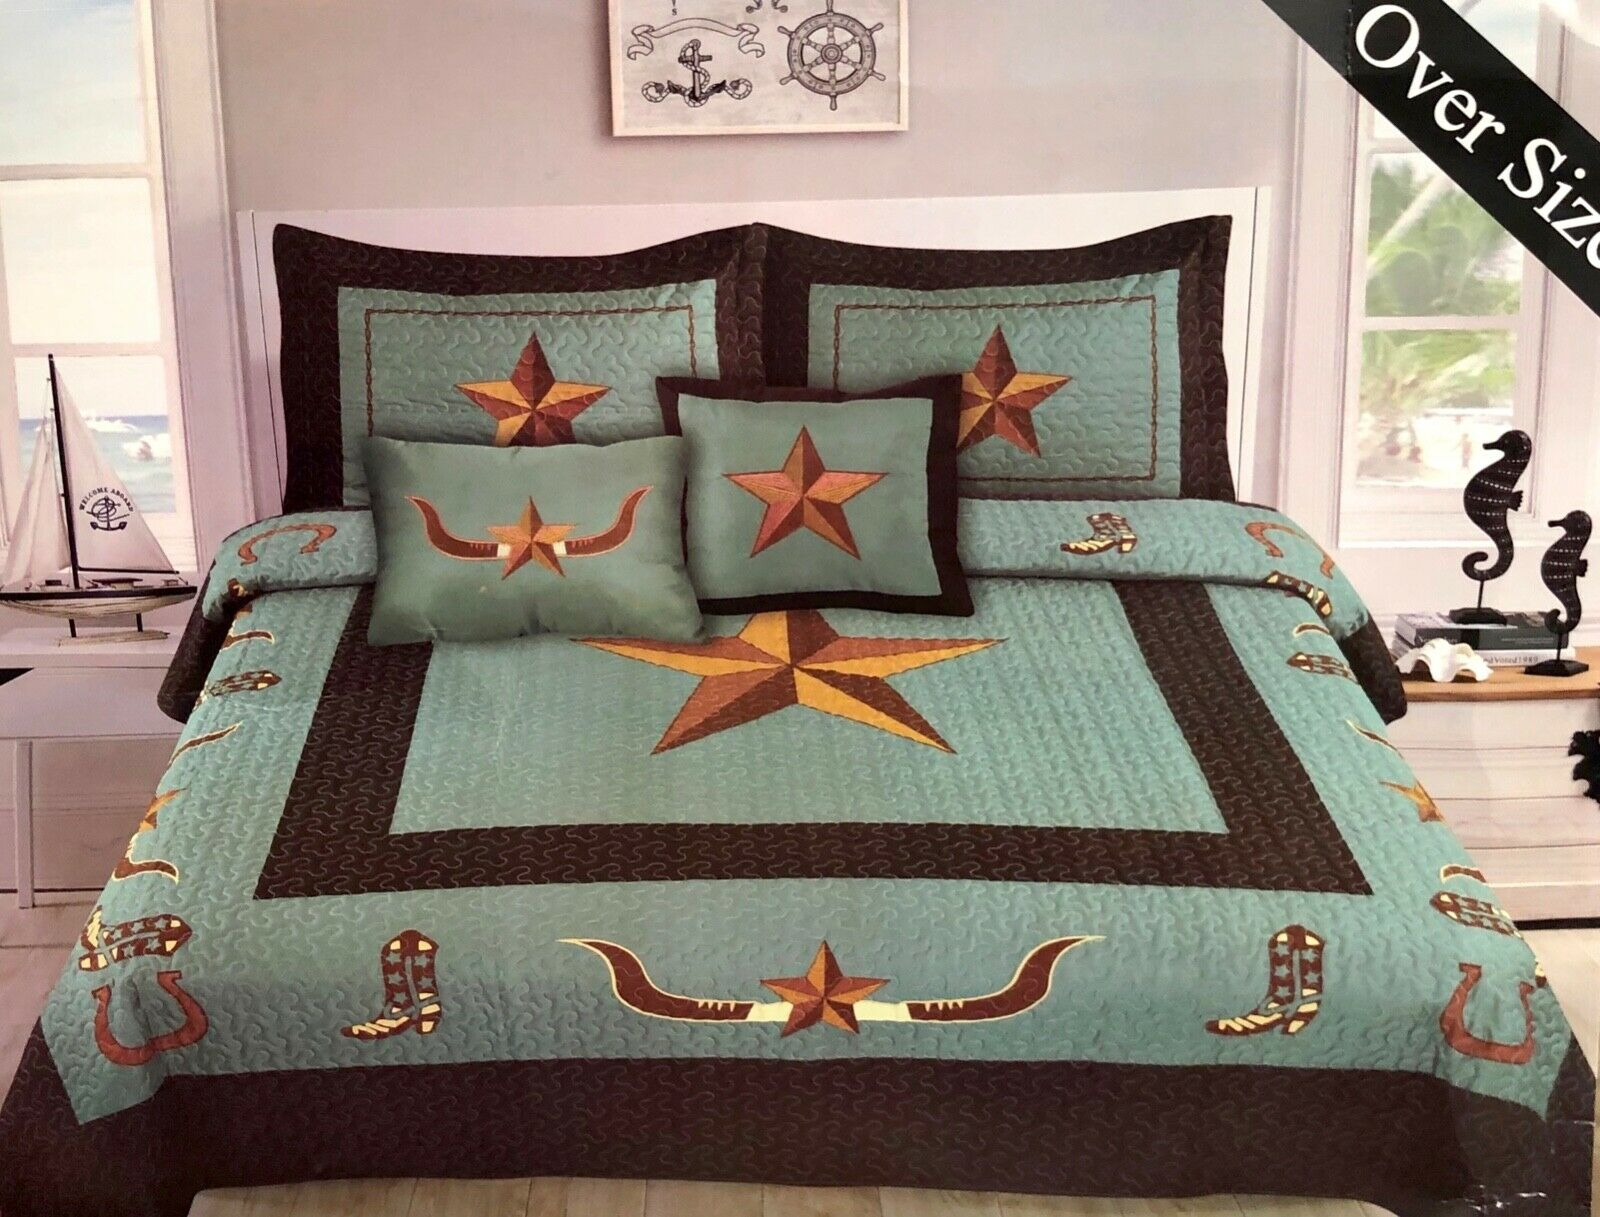 Western Rustic Turquoise Longhorn Star & Stiefel Bedspread Quilt Quilt Quilt - 5 Piece Set f493a0